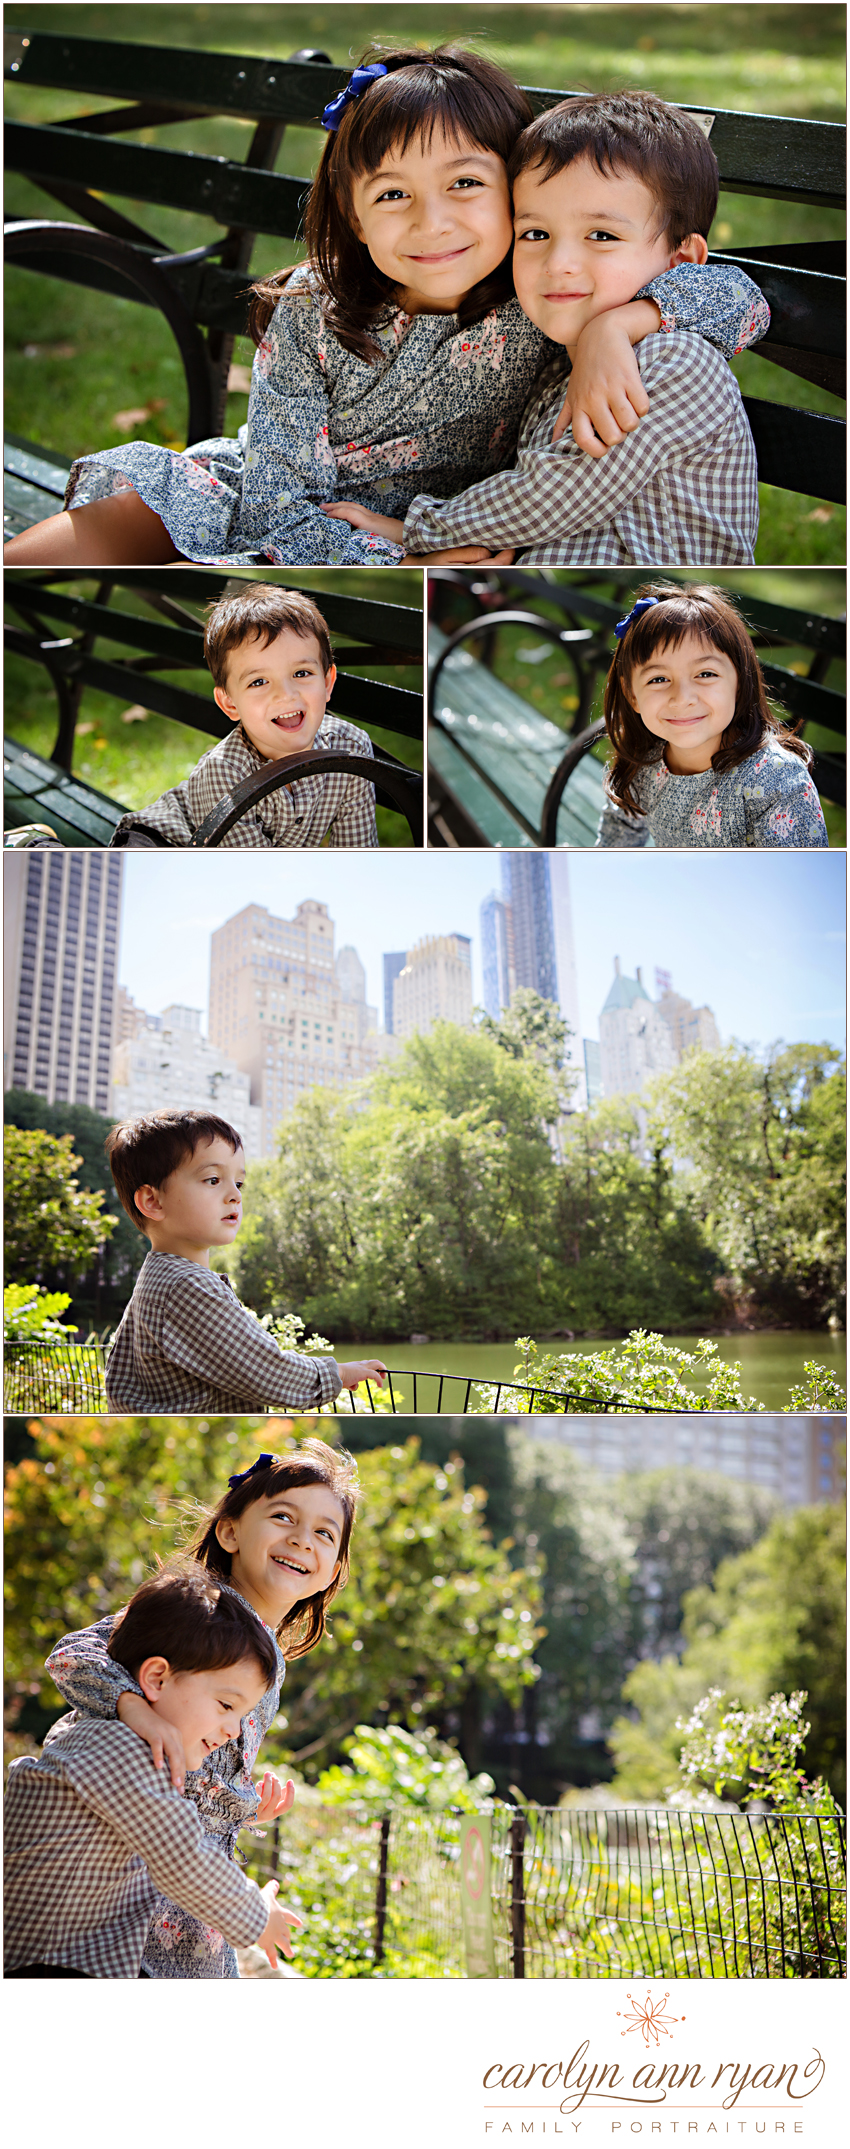 Stylish Uptown Charlotte Family Photographs shares sibling portraits